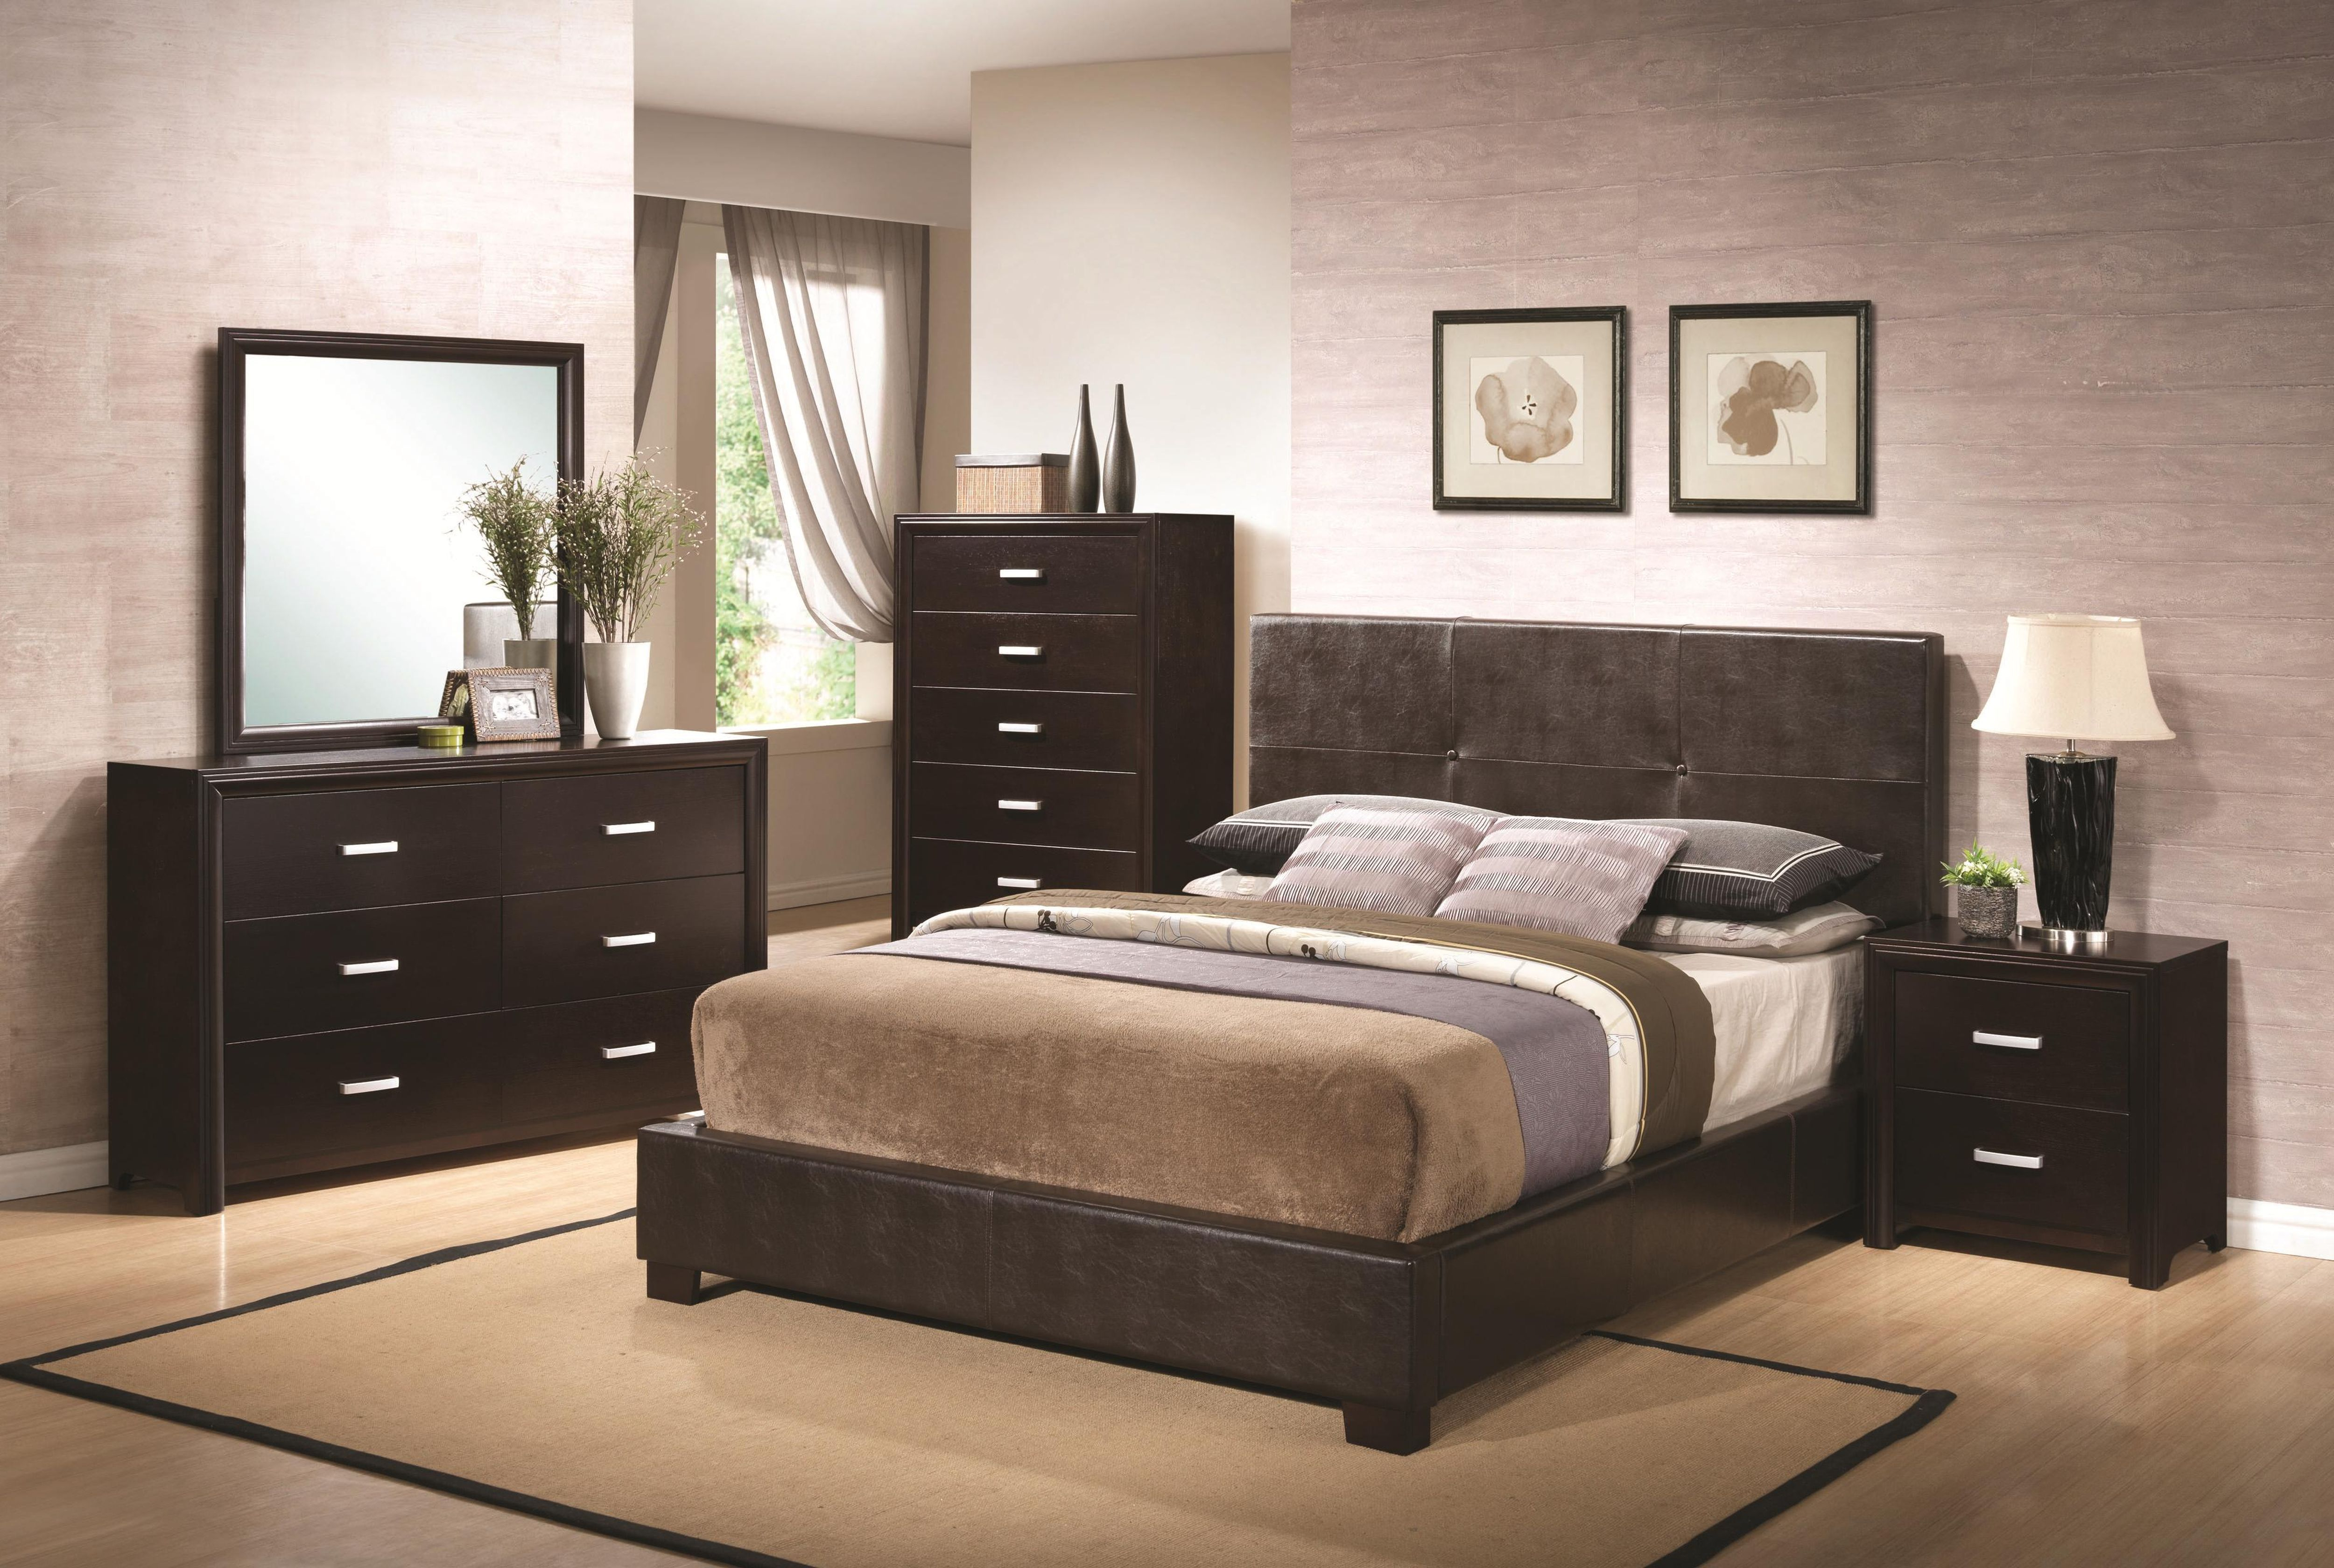 Bedroom decorating ideas dark brown furniture design ideas